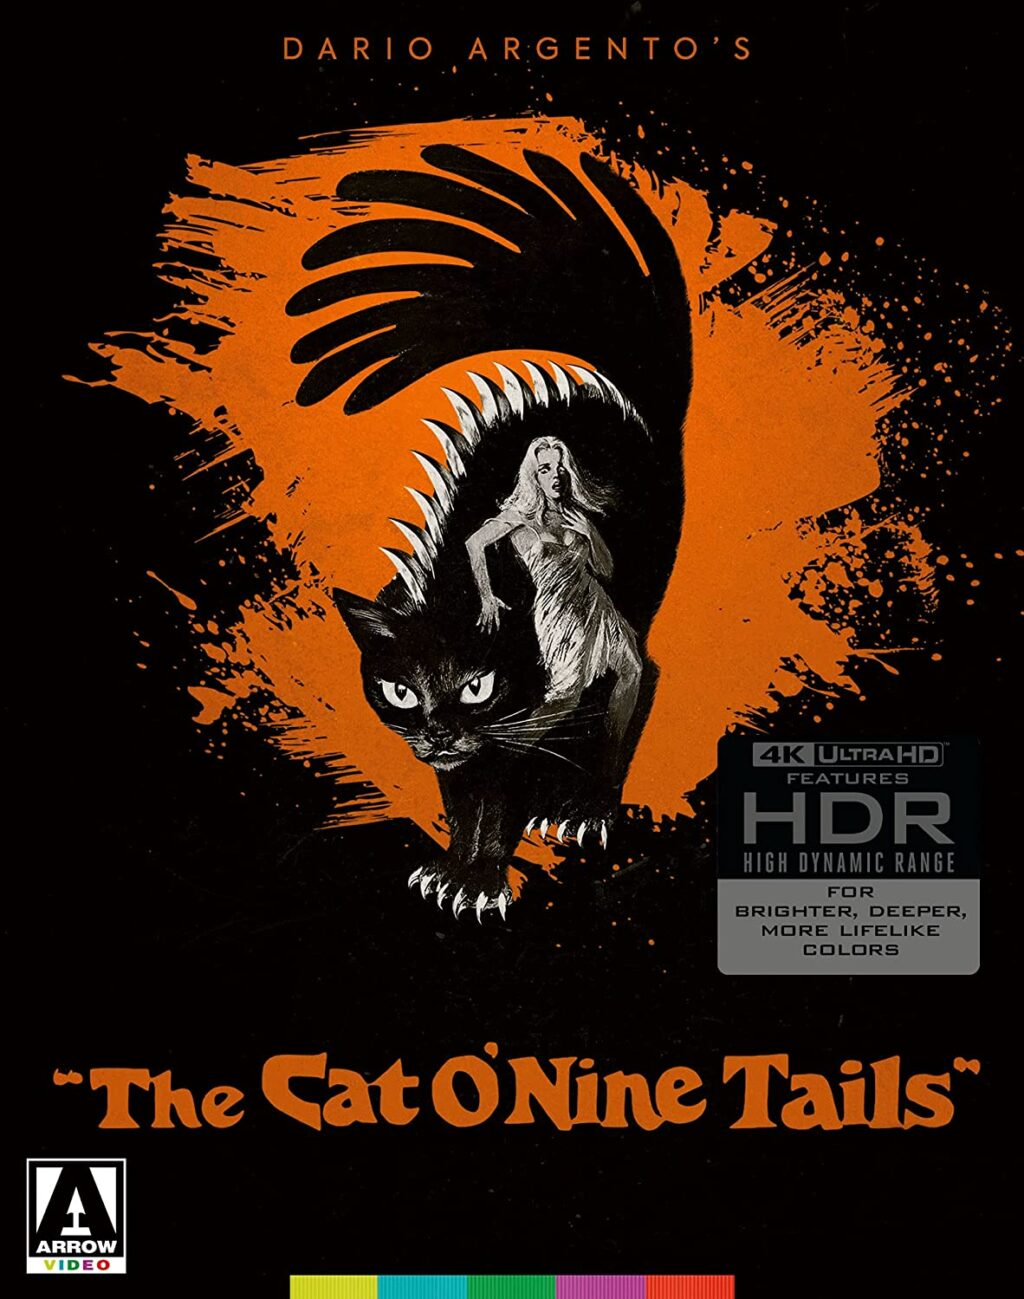 cat o nine tails 4k 1024x1299 - 'The Cat O' Nine Tails' 4K Review: Underrated Argento Gets An Upgrade